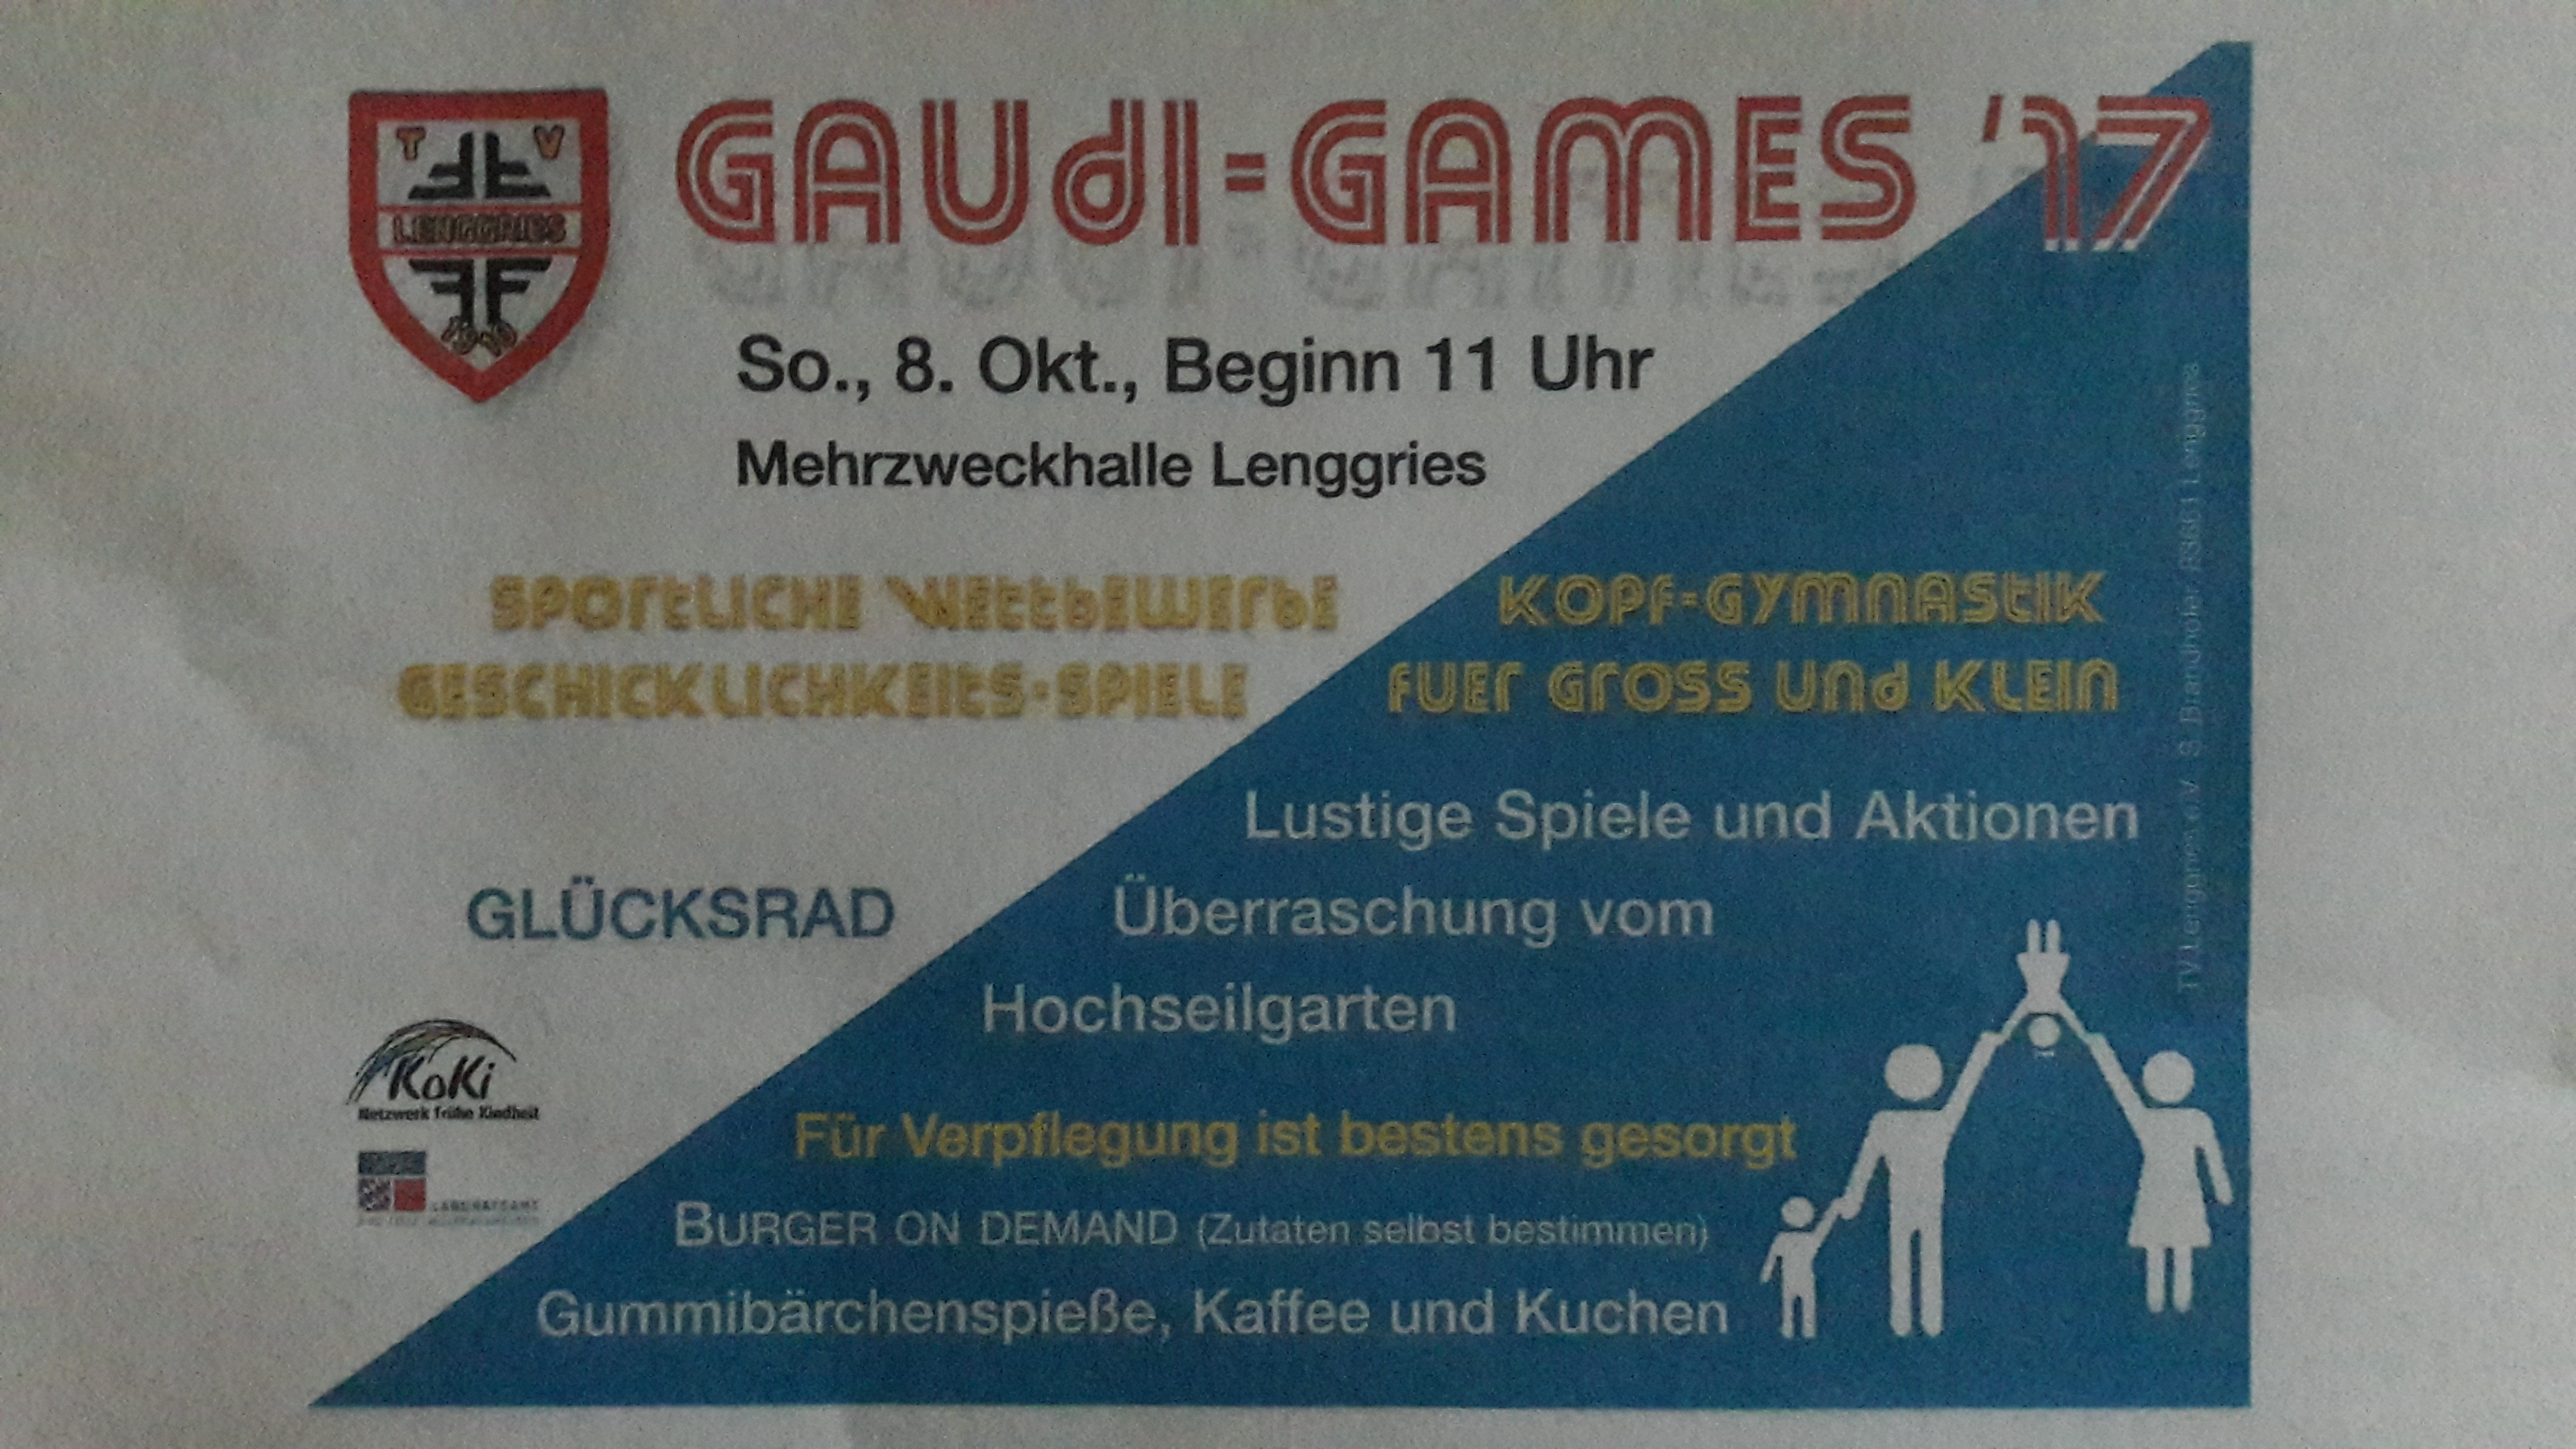 Gaudigames2017